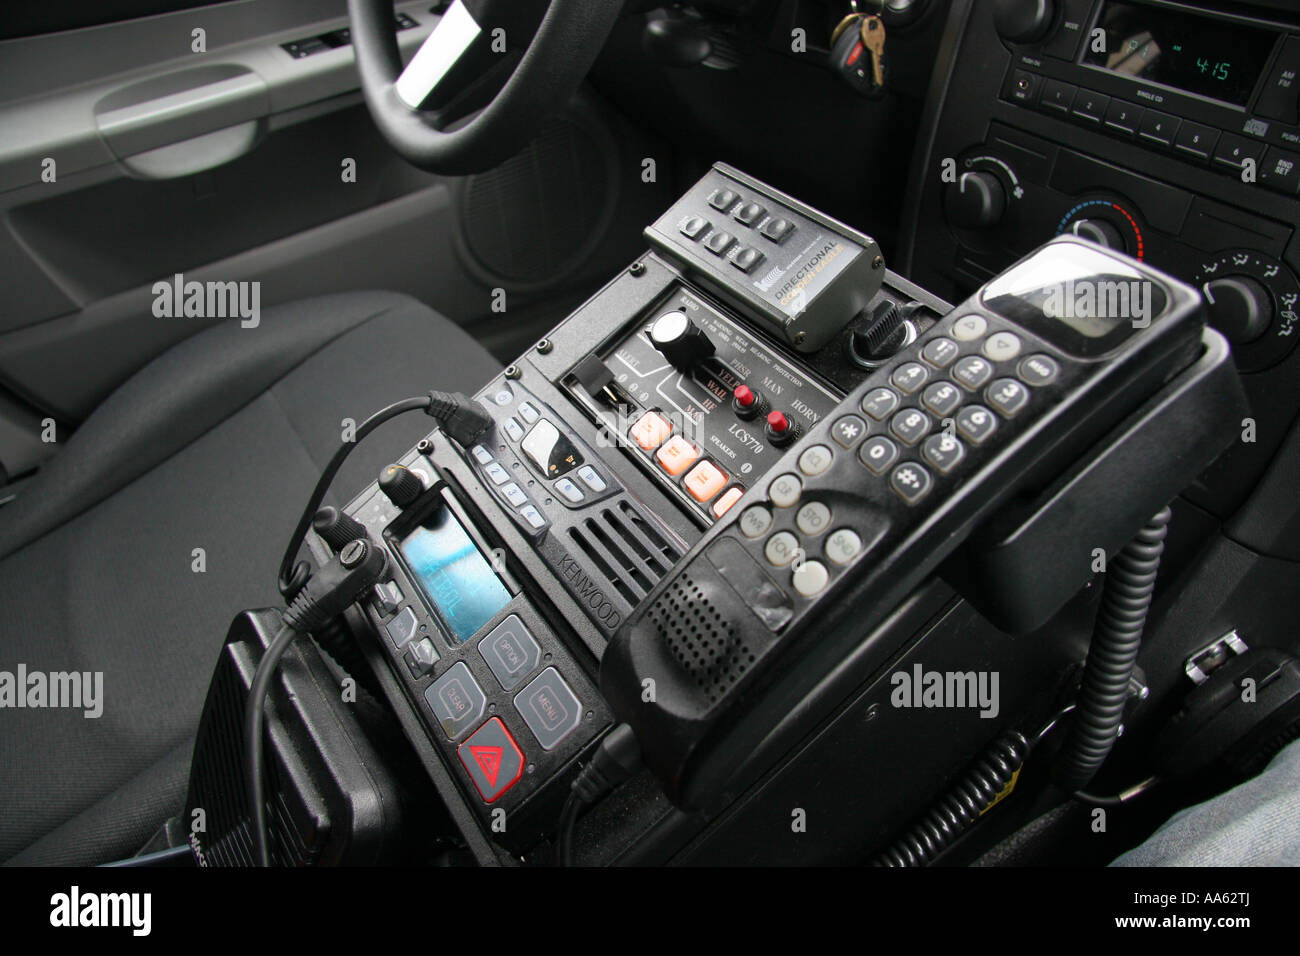 police car radio and emergency equipment control panel stock photo 12526145 alamy. Black Bedroom Furniture Sets. Home Design Ideas